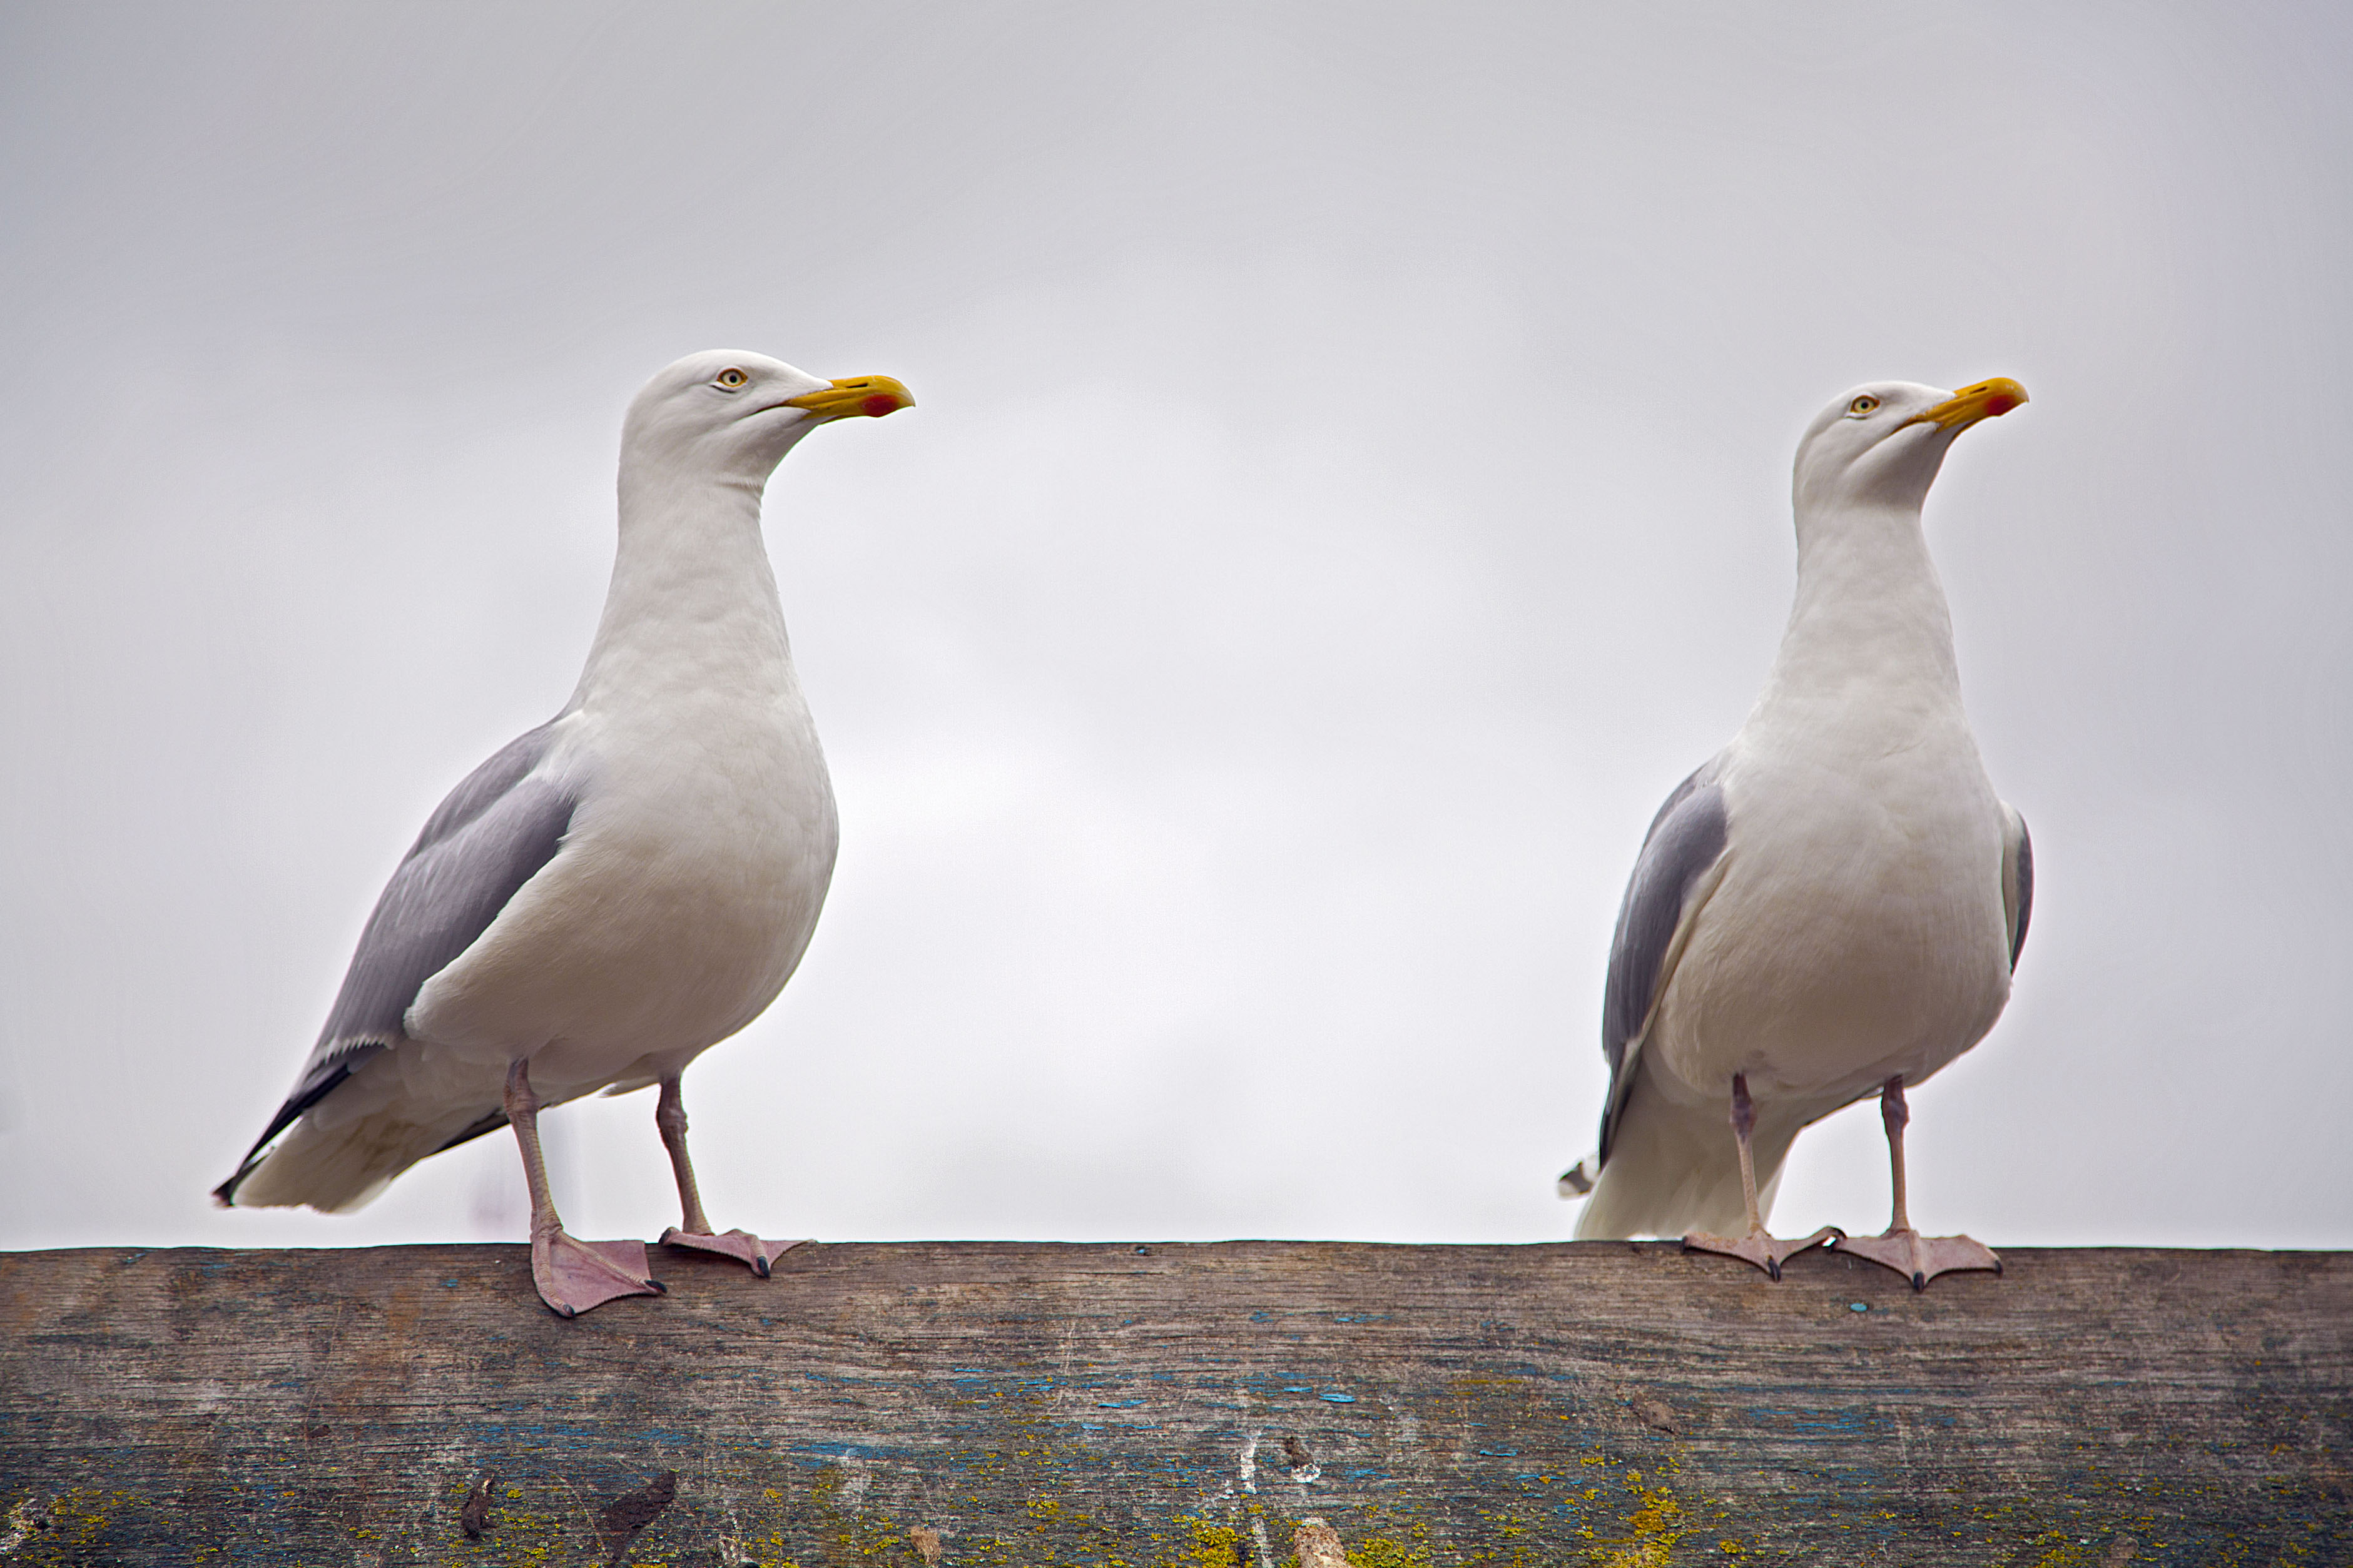 Seagulls in Padstow,Cornwall